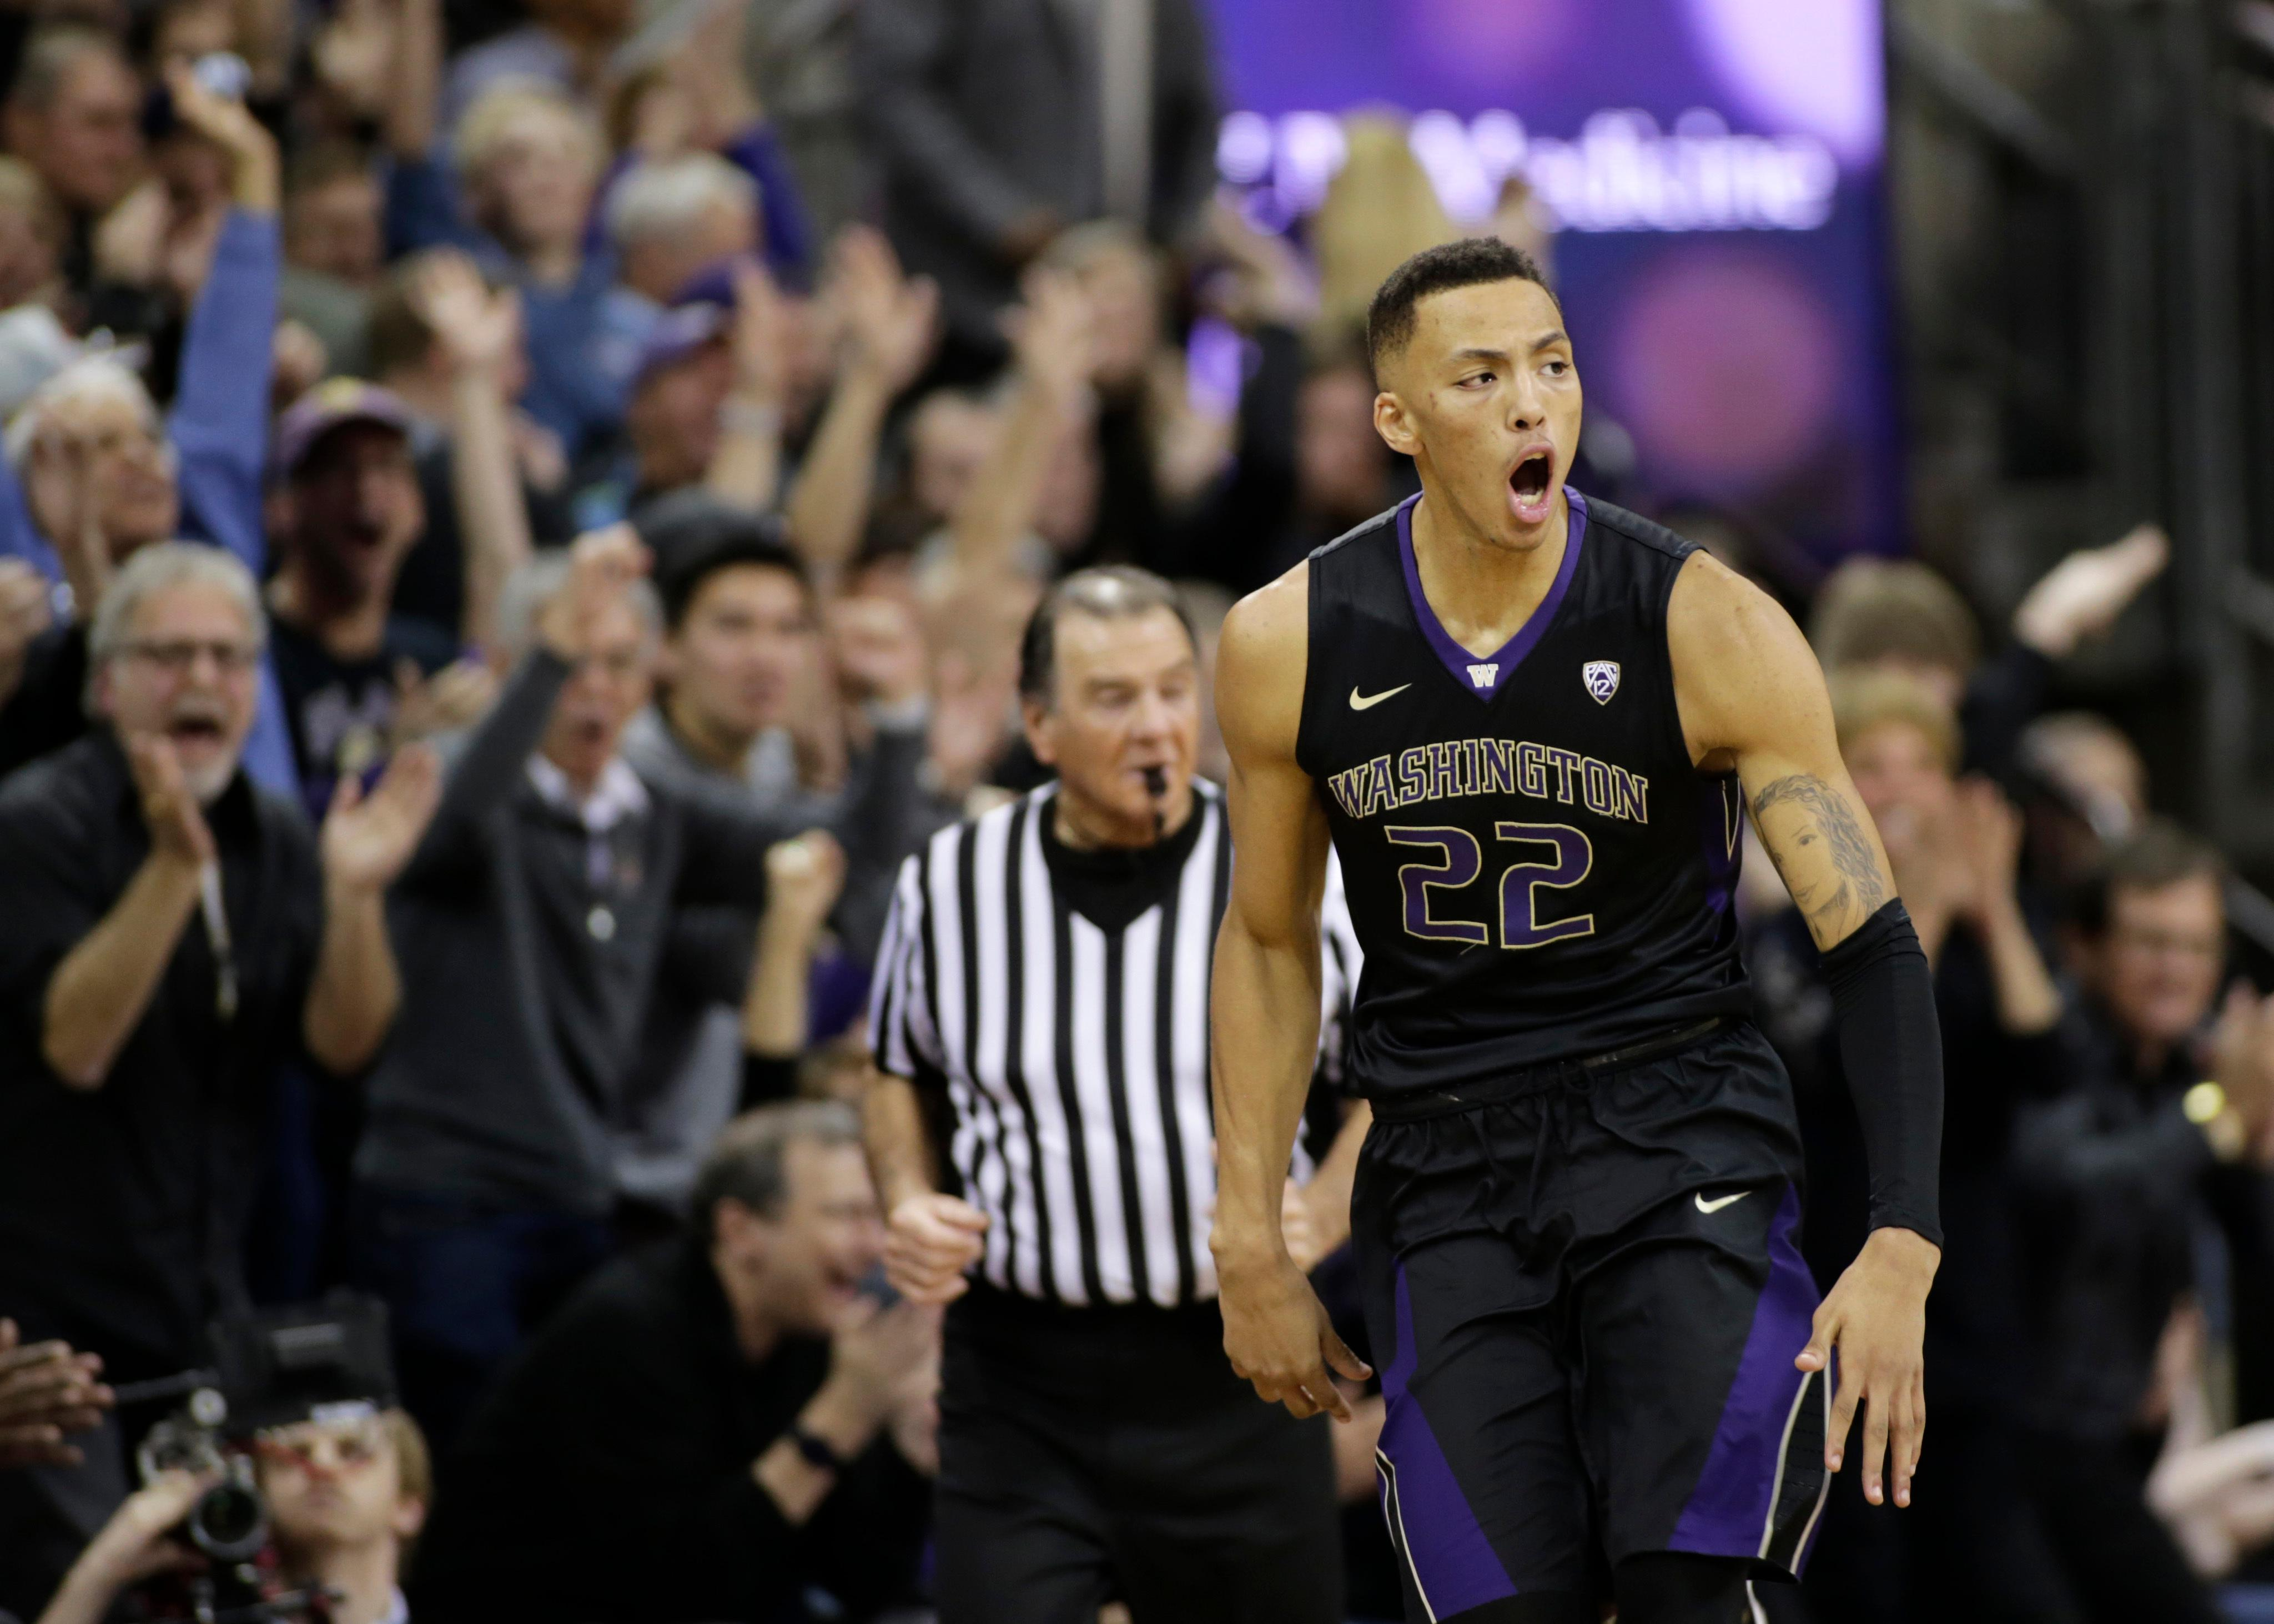 Washington's Dominic Green reacts after sinking a 3-point basket during the second half against Arizona in an NCAA college basketball game Saturday, Feb. 3, 2018, in Seattle. Washington won 78-75 with Green later hitting the tie-breaking shot in the final seconds. (AP Photo/John Froschauer)